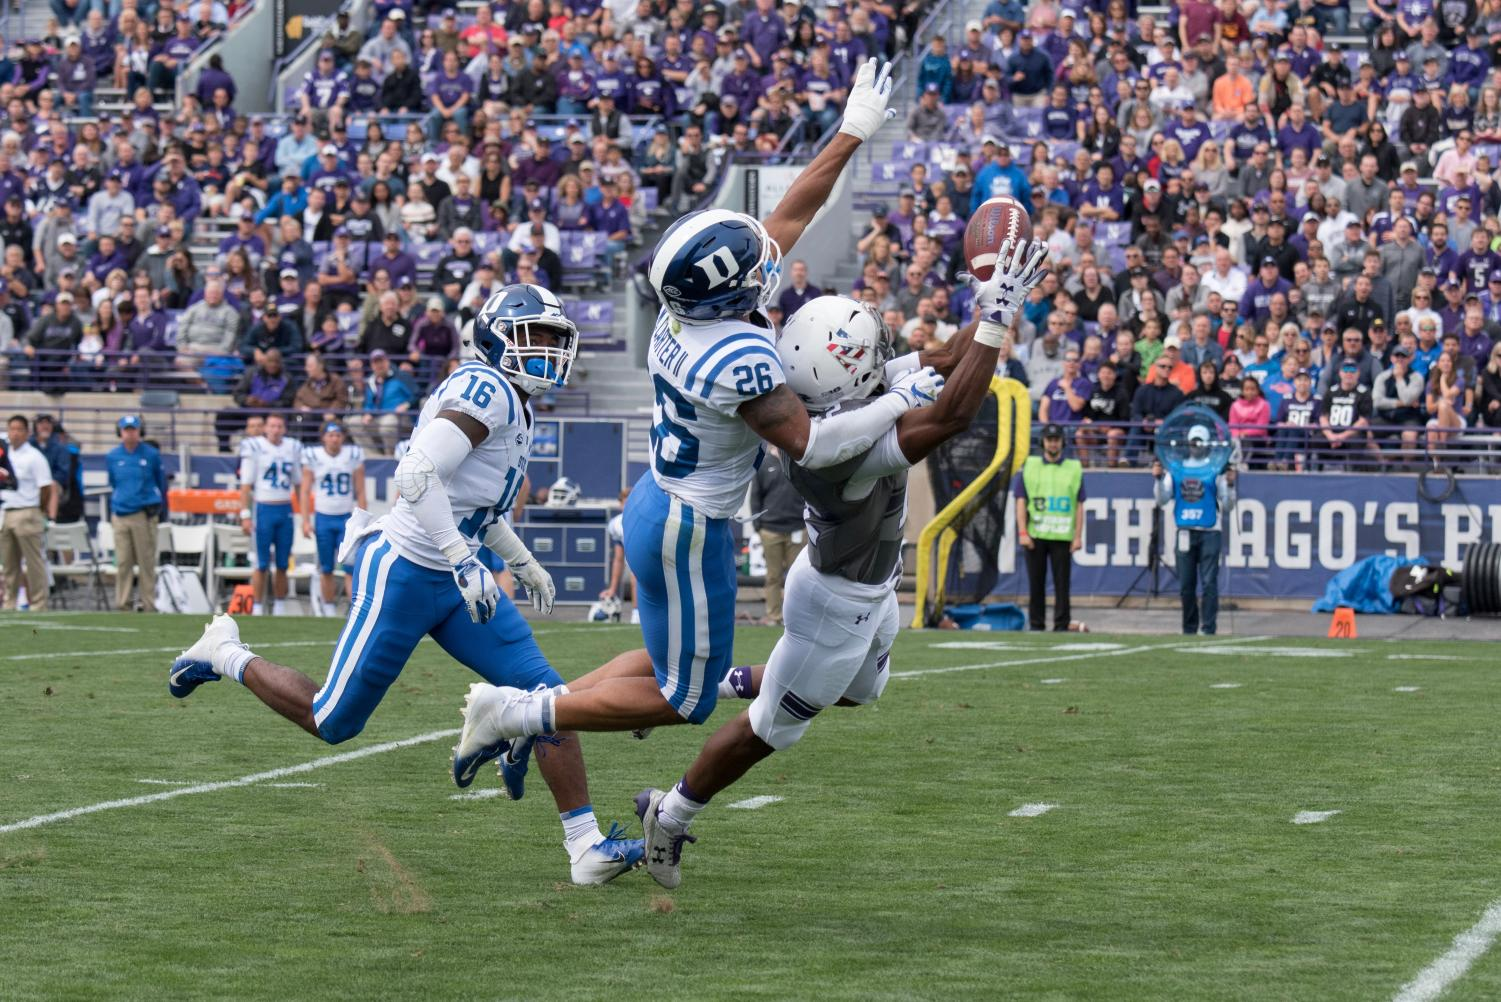 Northwestern freshman receiver JJ Jefferson leaps for a pass that ended up falling incomplete. The Wildcats scored zero points after their opening drive Saturday.